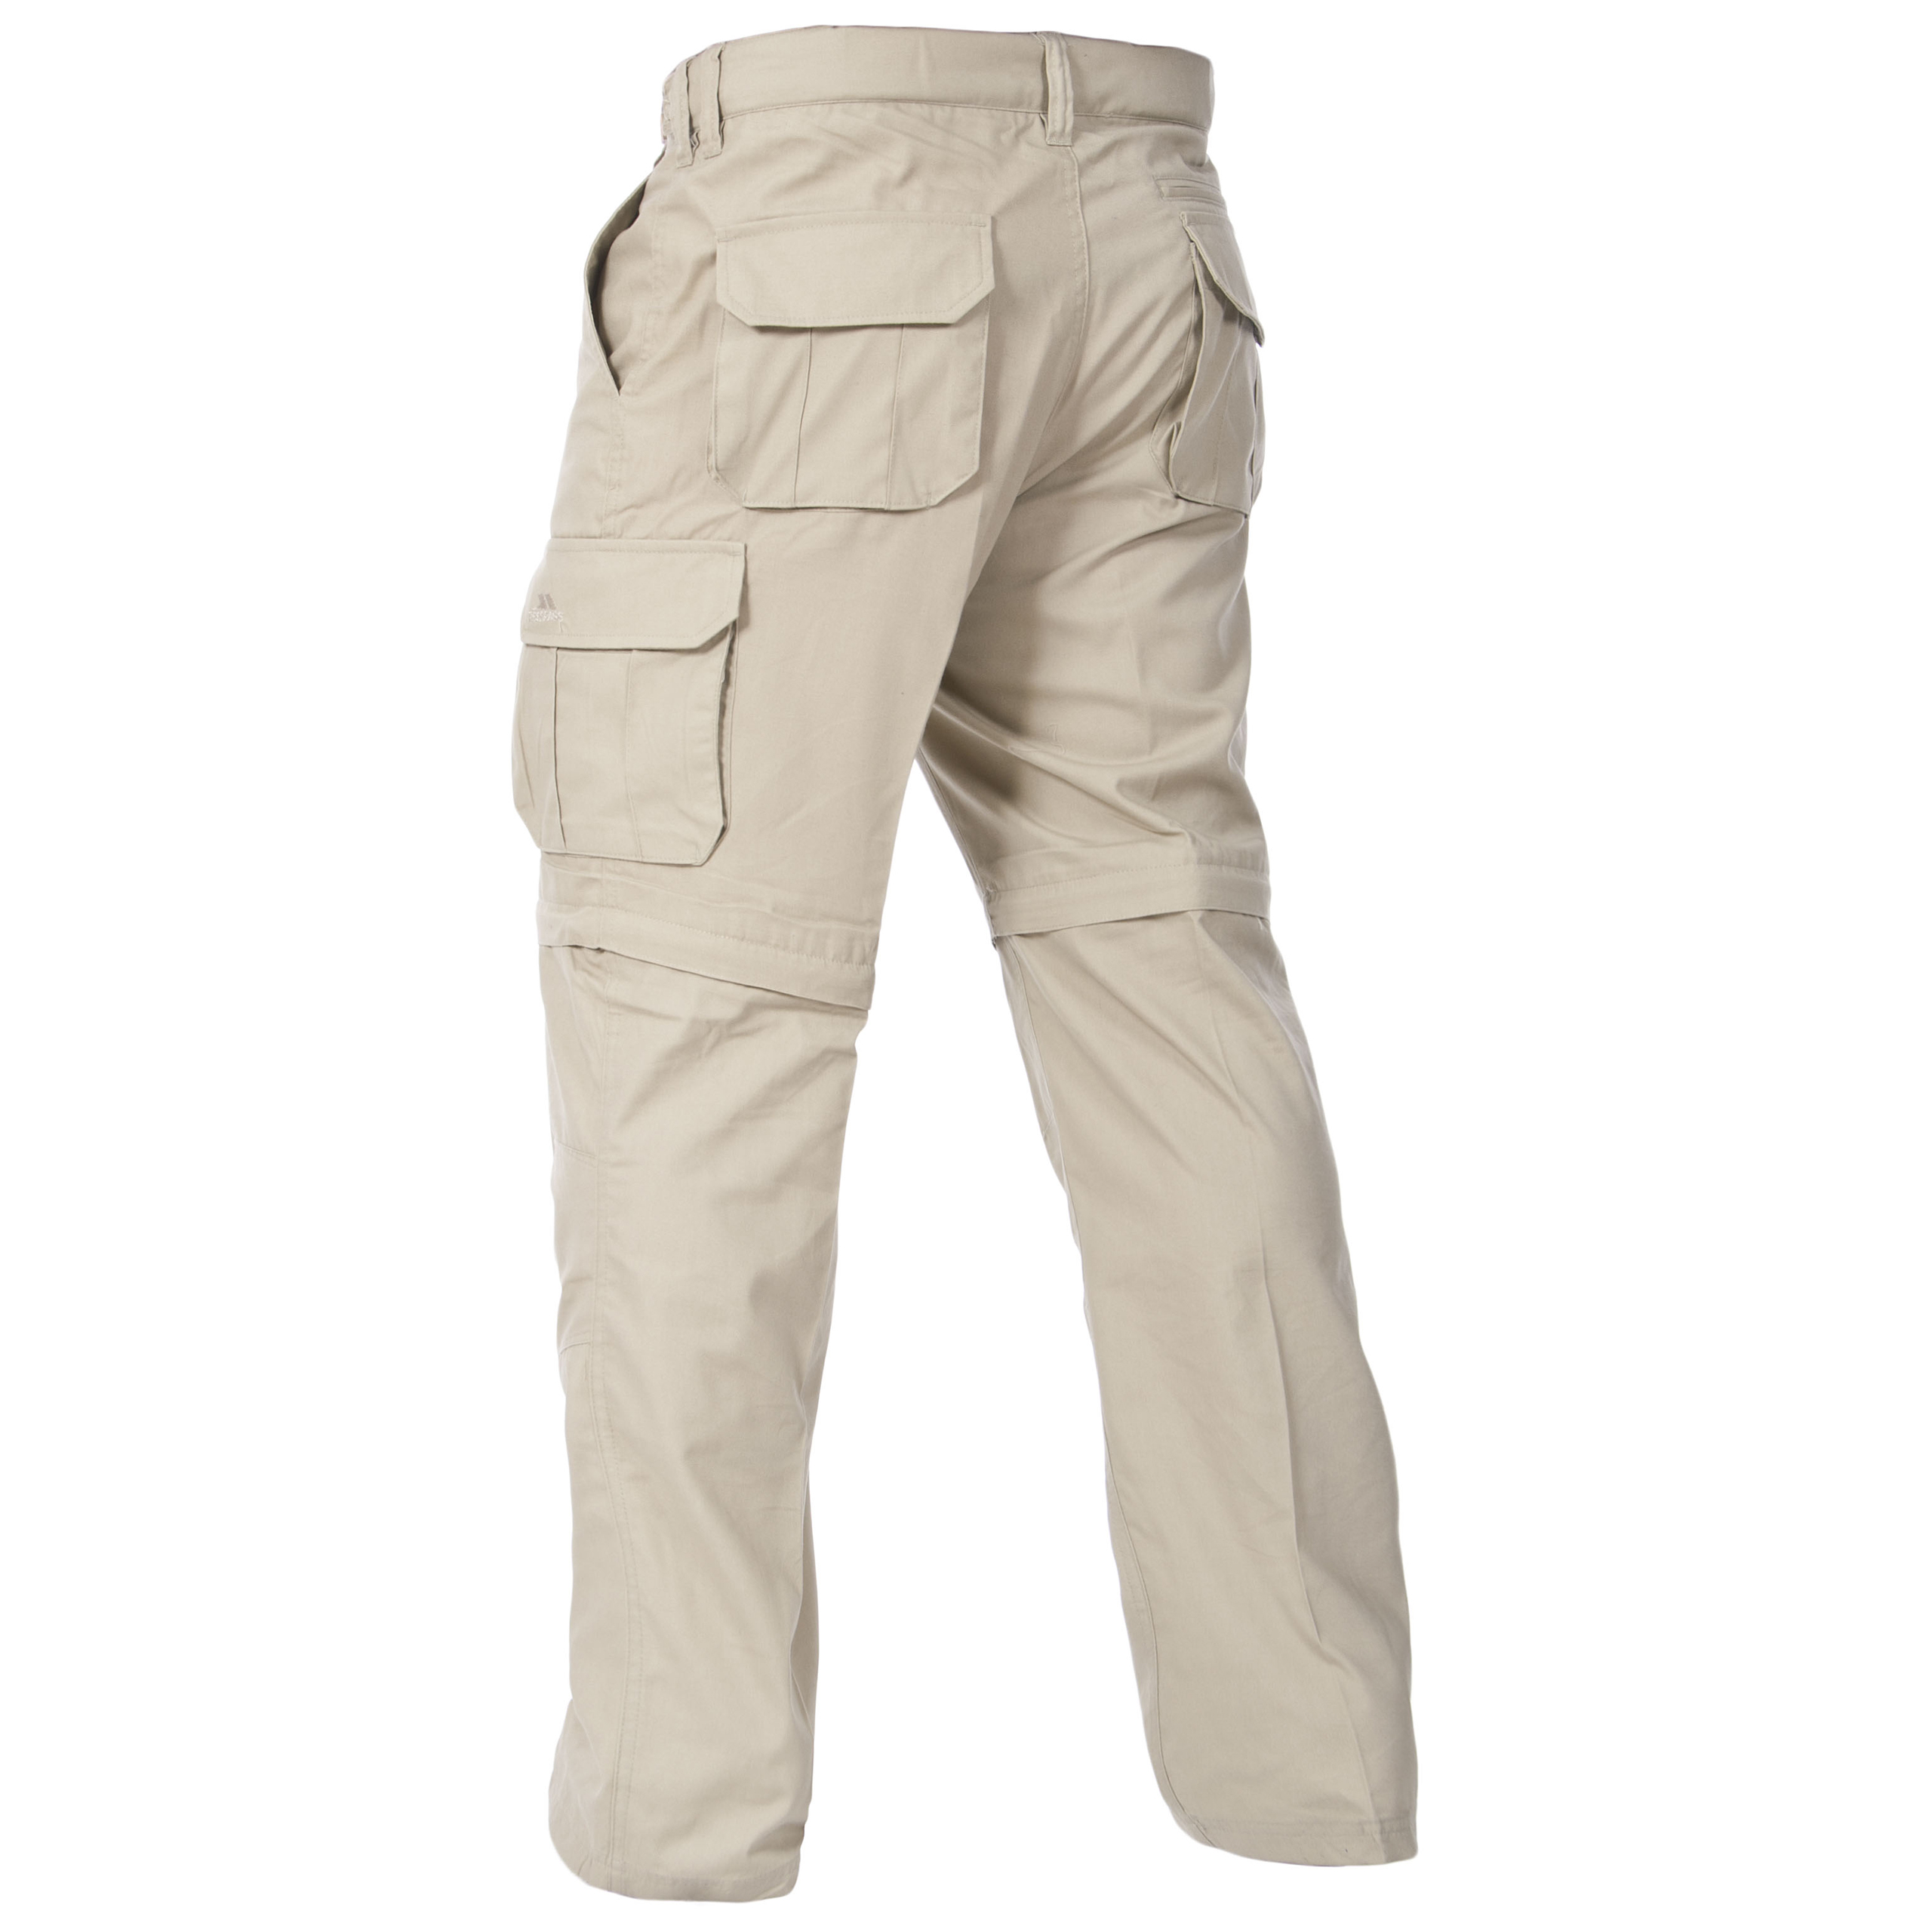 Trespass-Mallik-Mens-Cargo-Trousers-Pants-in-Grey-Green-amp-Brown thumbnail 10